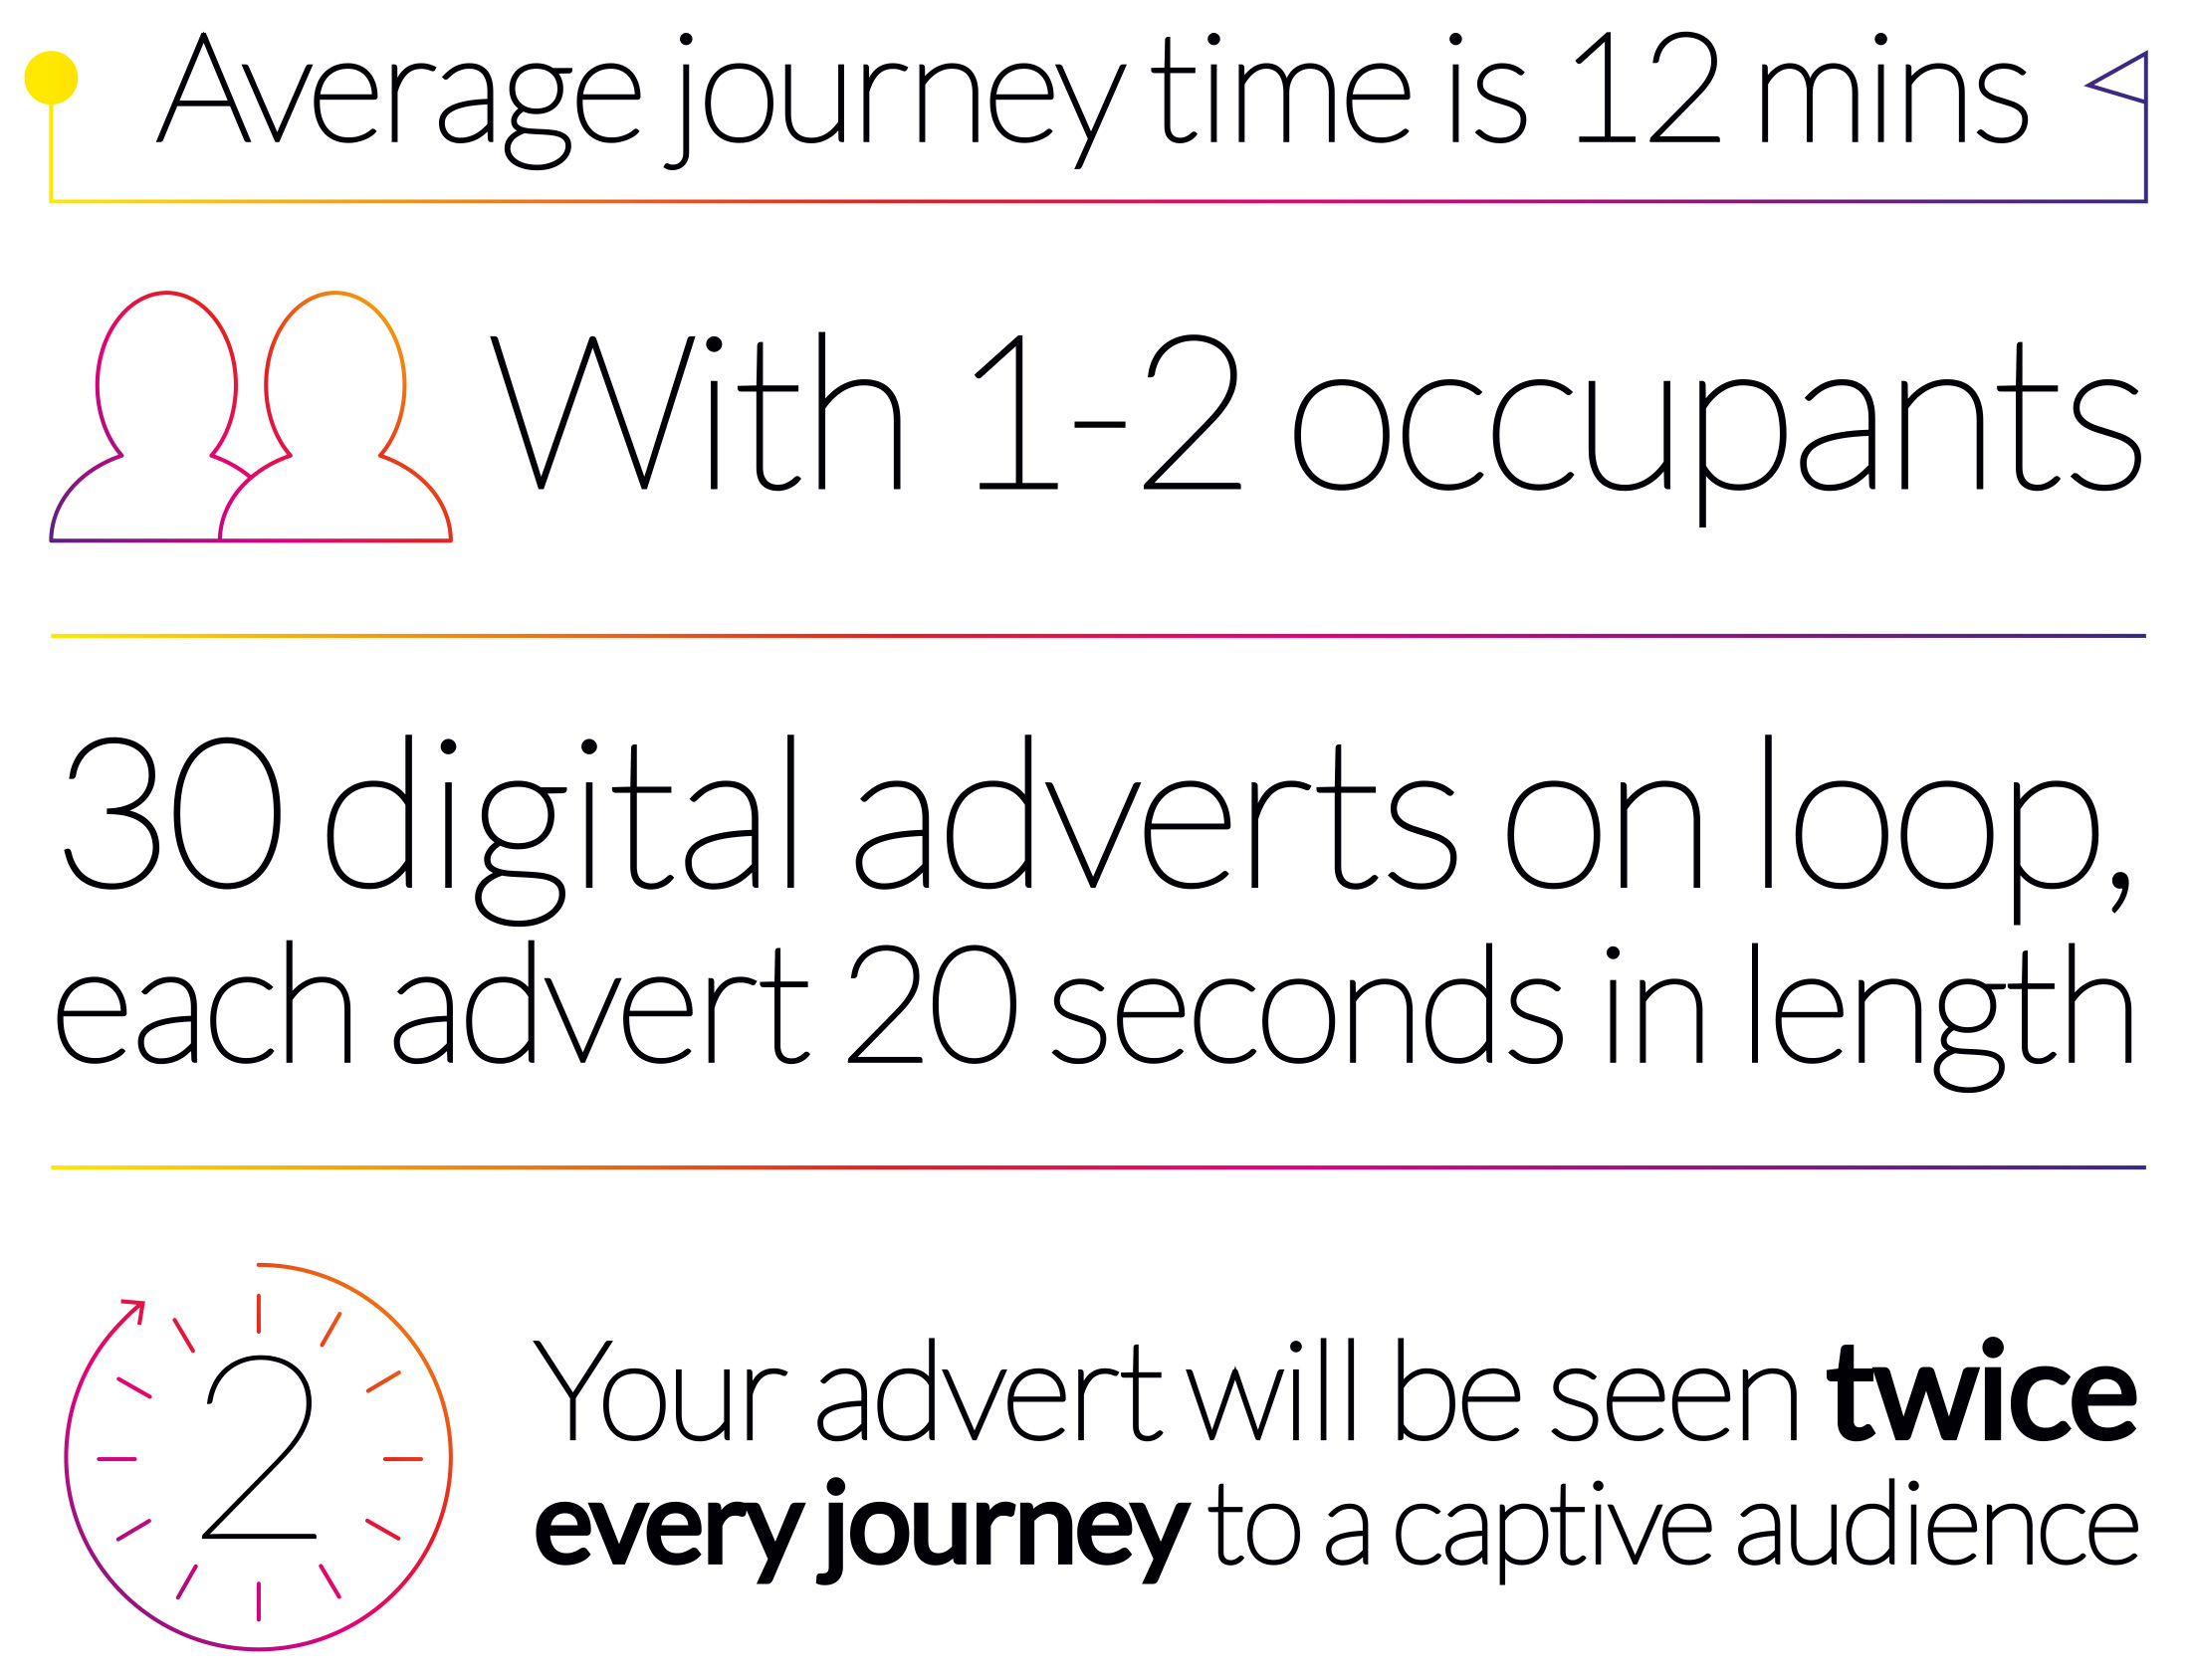 advertise-infographic-retina-mobile